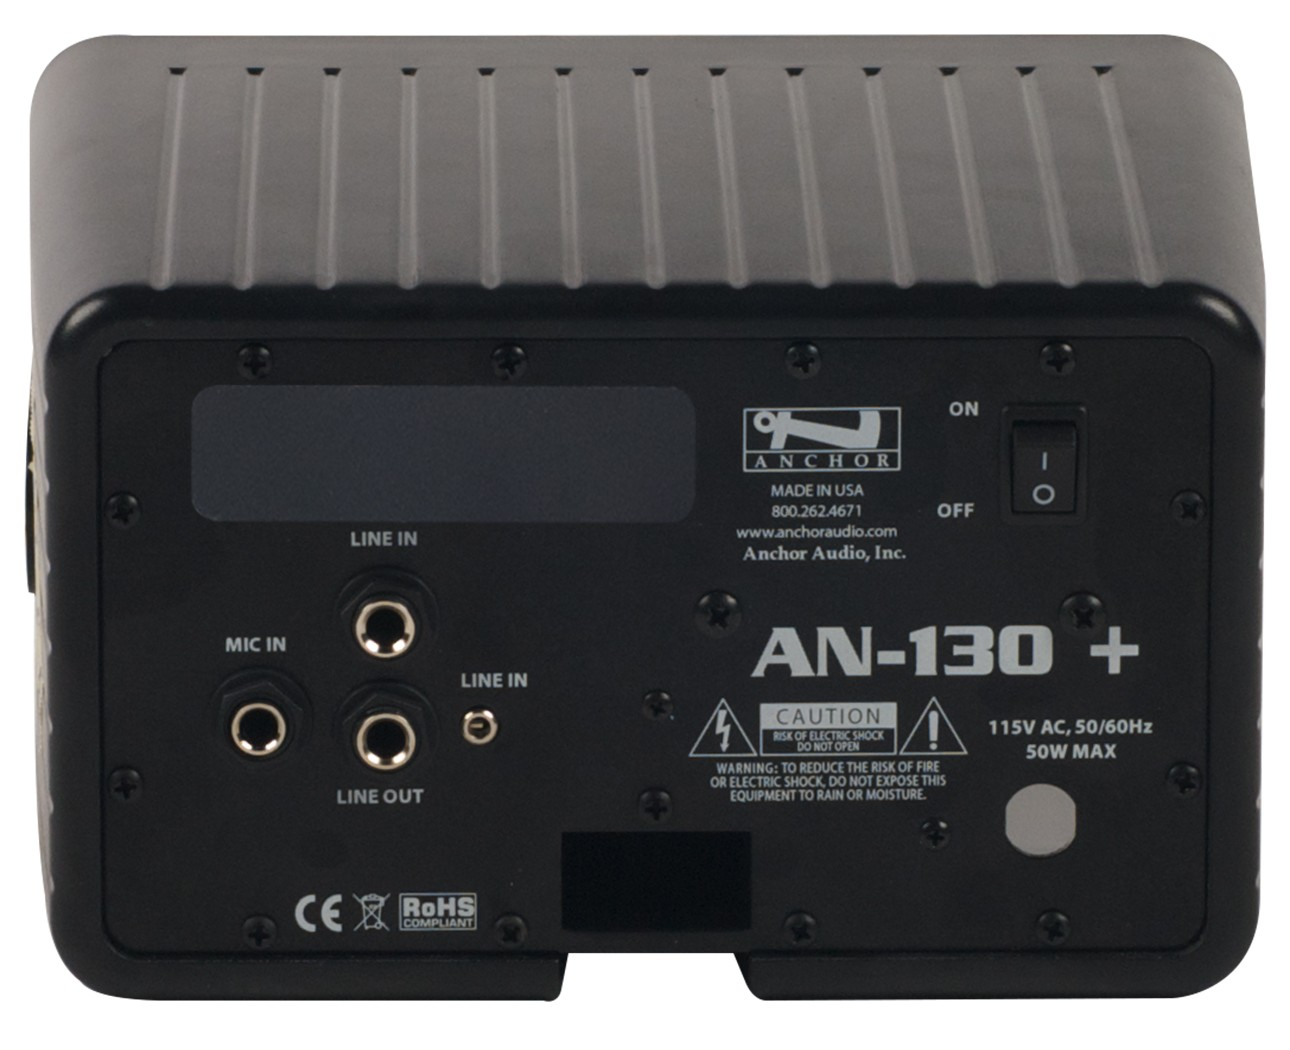 Anchor Audio AN-130RCBK+ AN-130+ with remote control - black